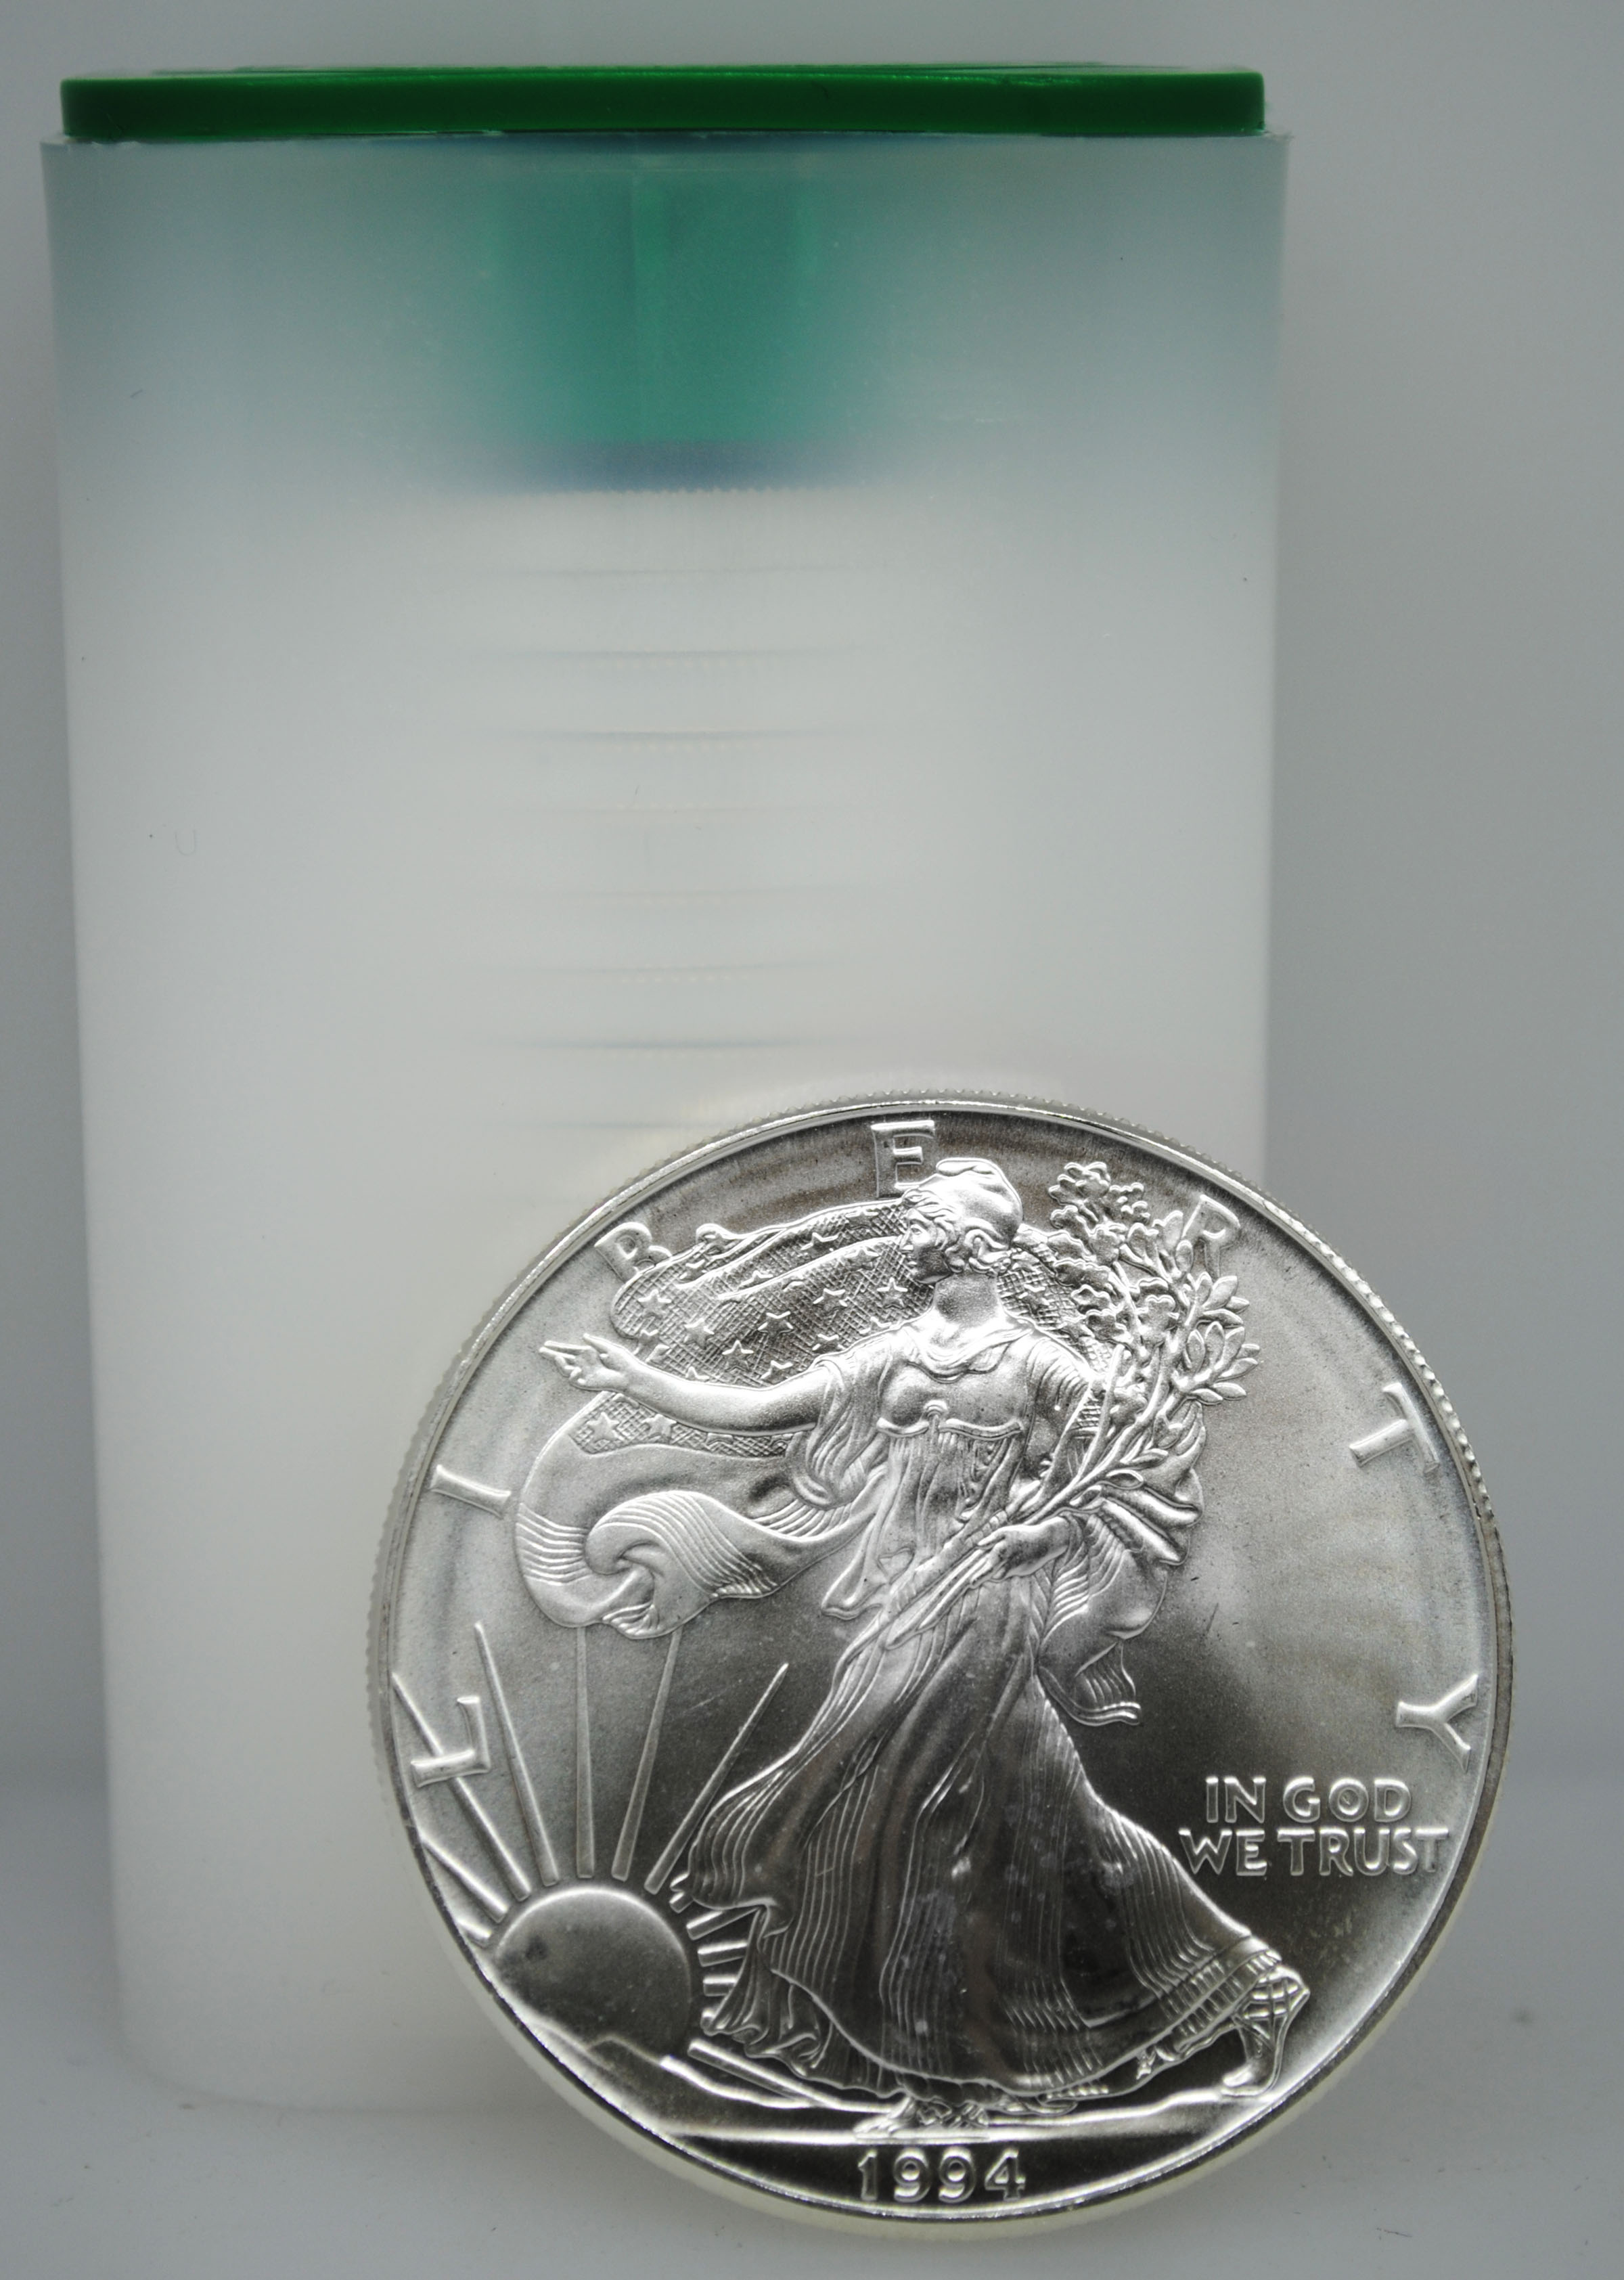 1994 Uncirculated Silver Eagles